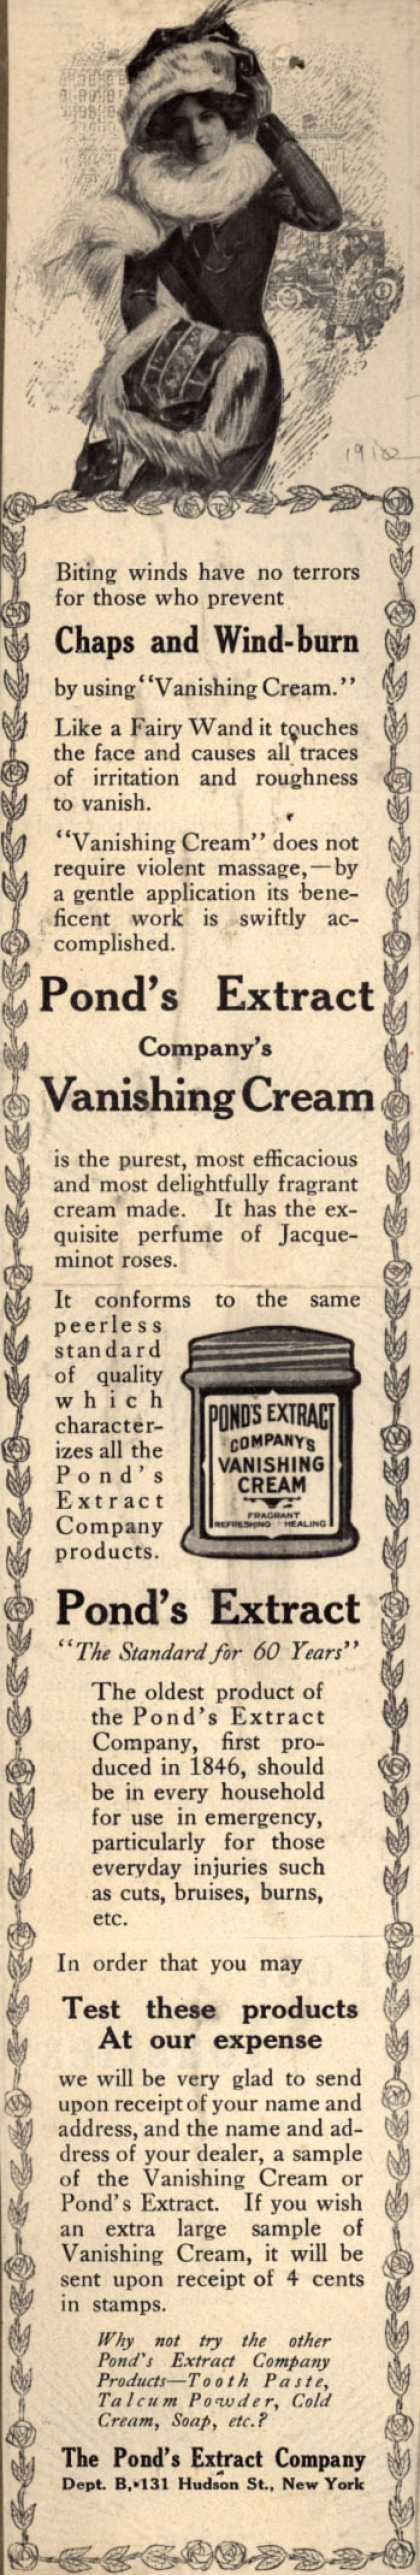 Pond's Extract Co.'s Pond's Vanishing Cream and Extract – Chaps and Windburn (1910)